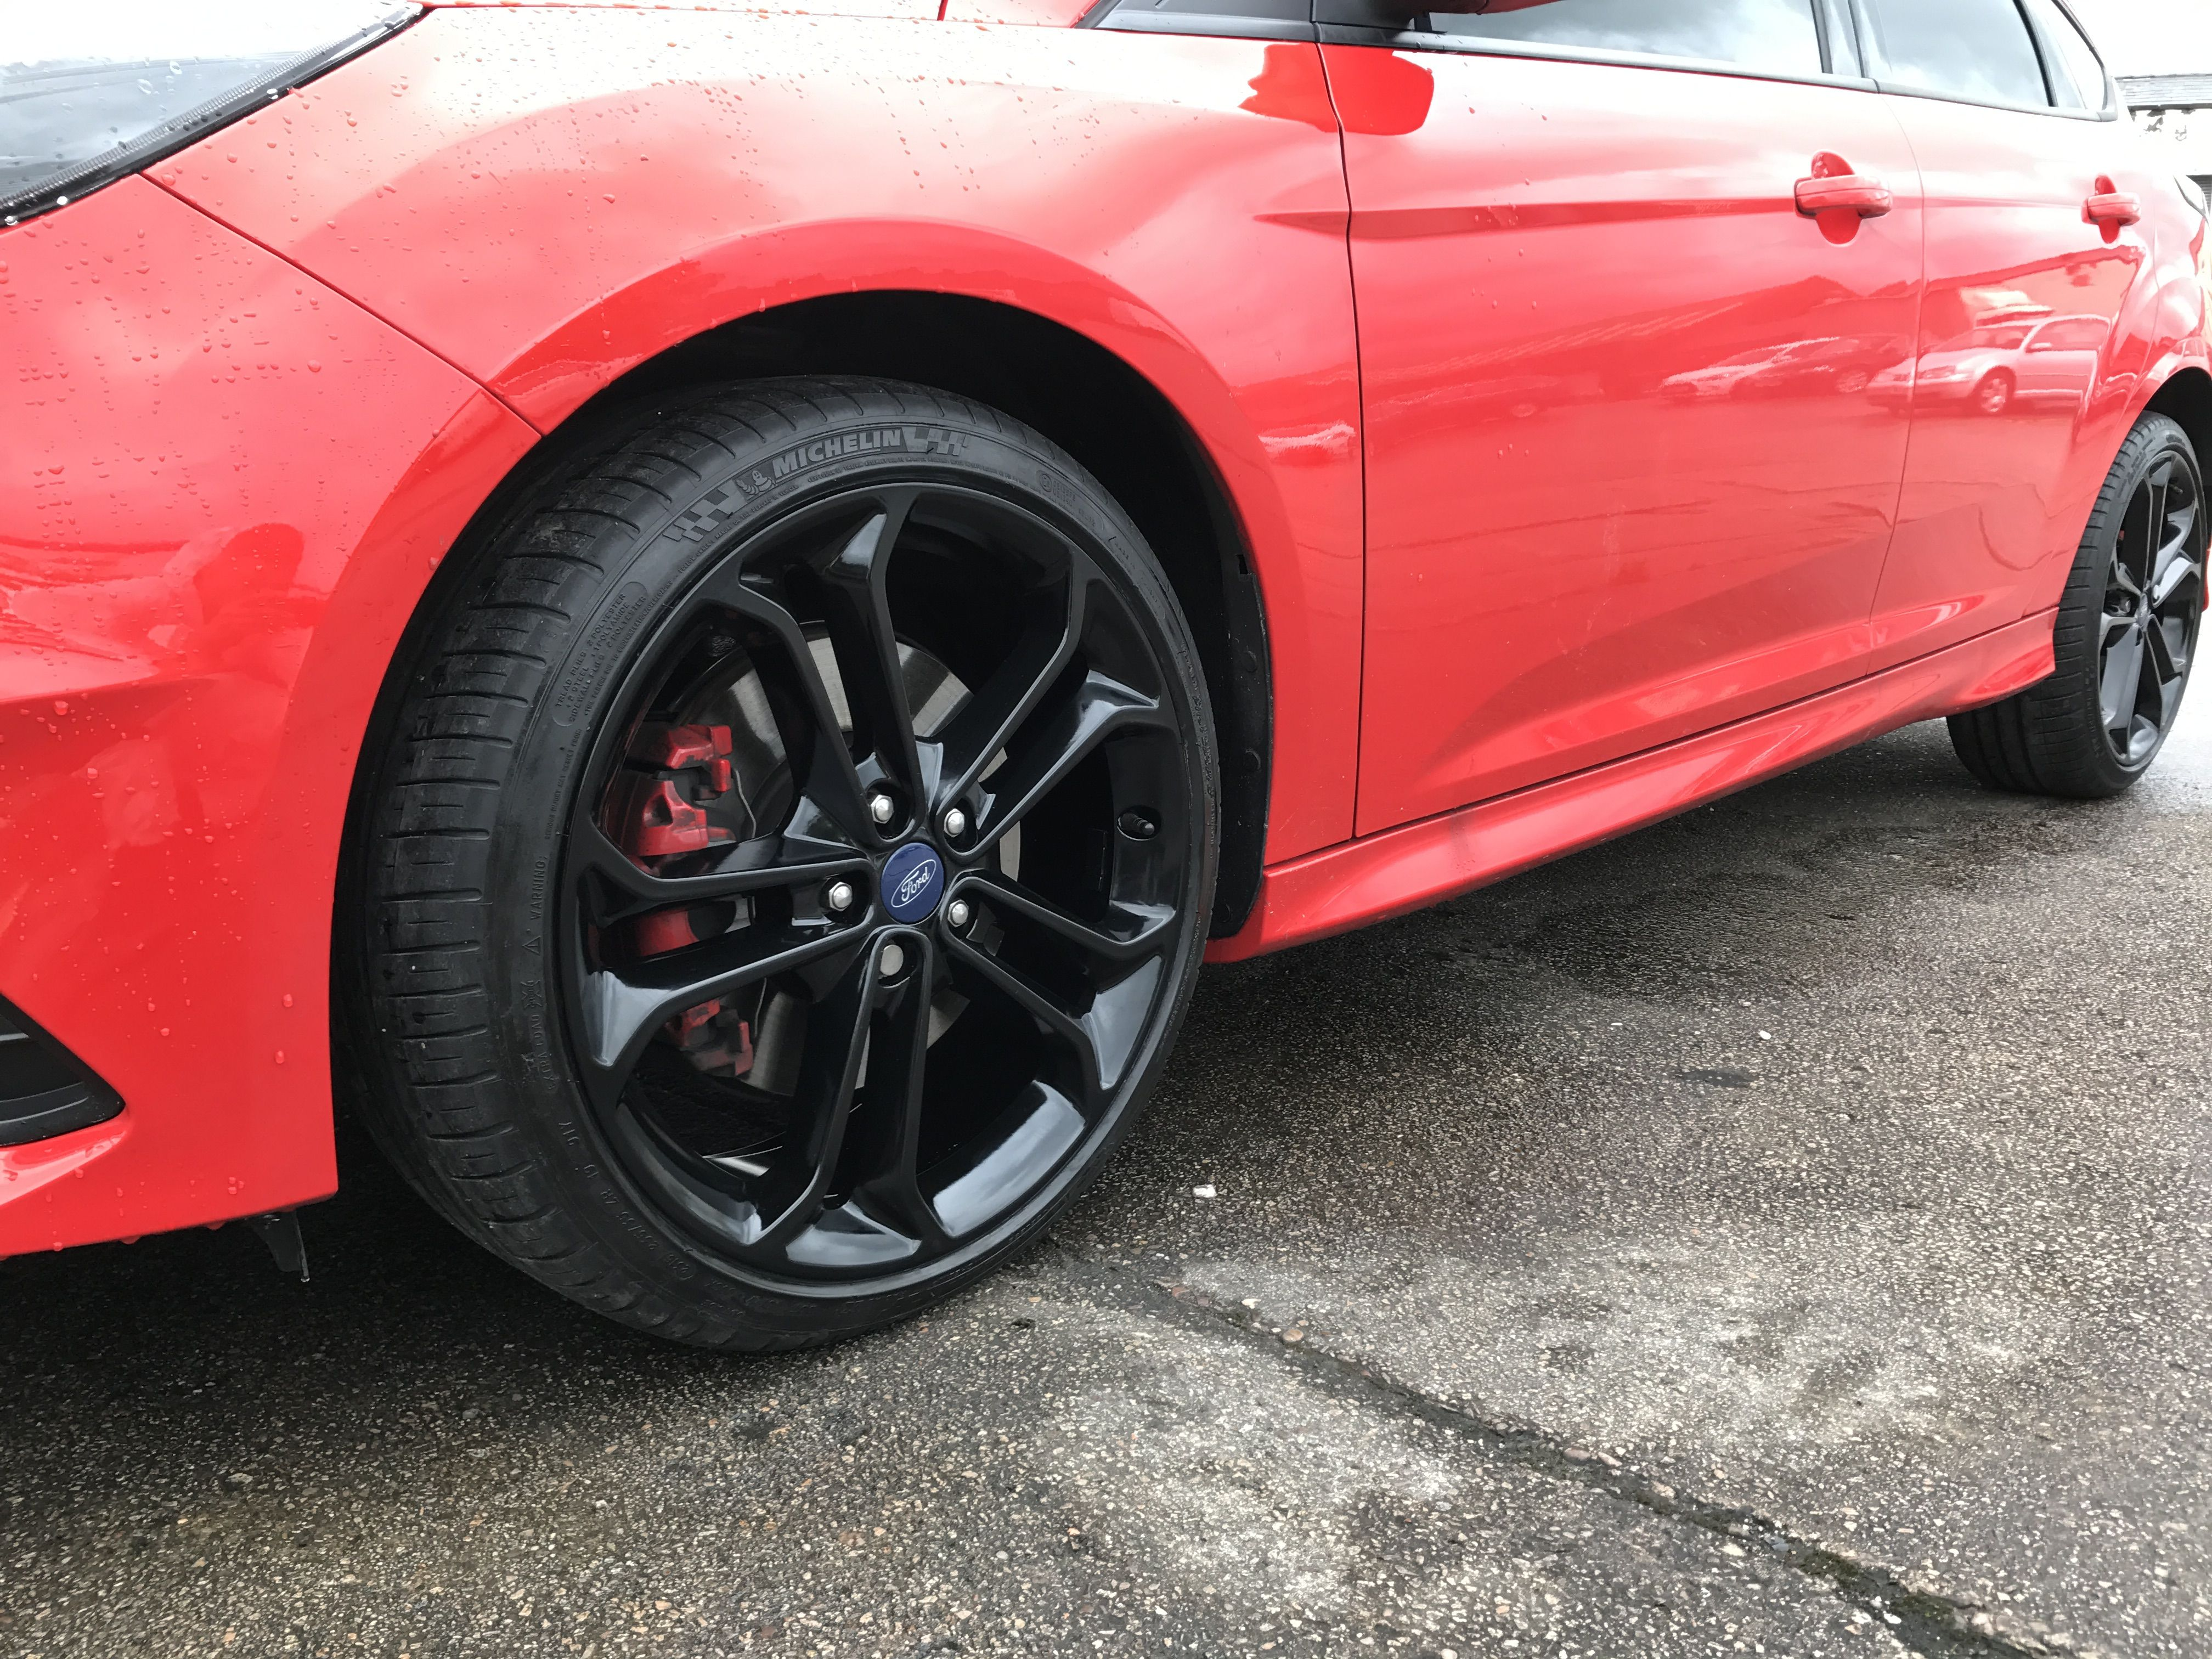 2017 Ford Focus ST alloys we refurbished and powder coated